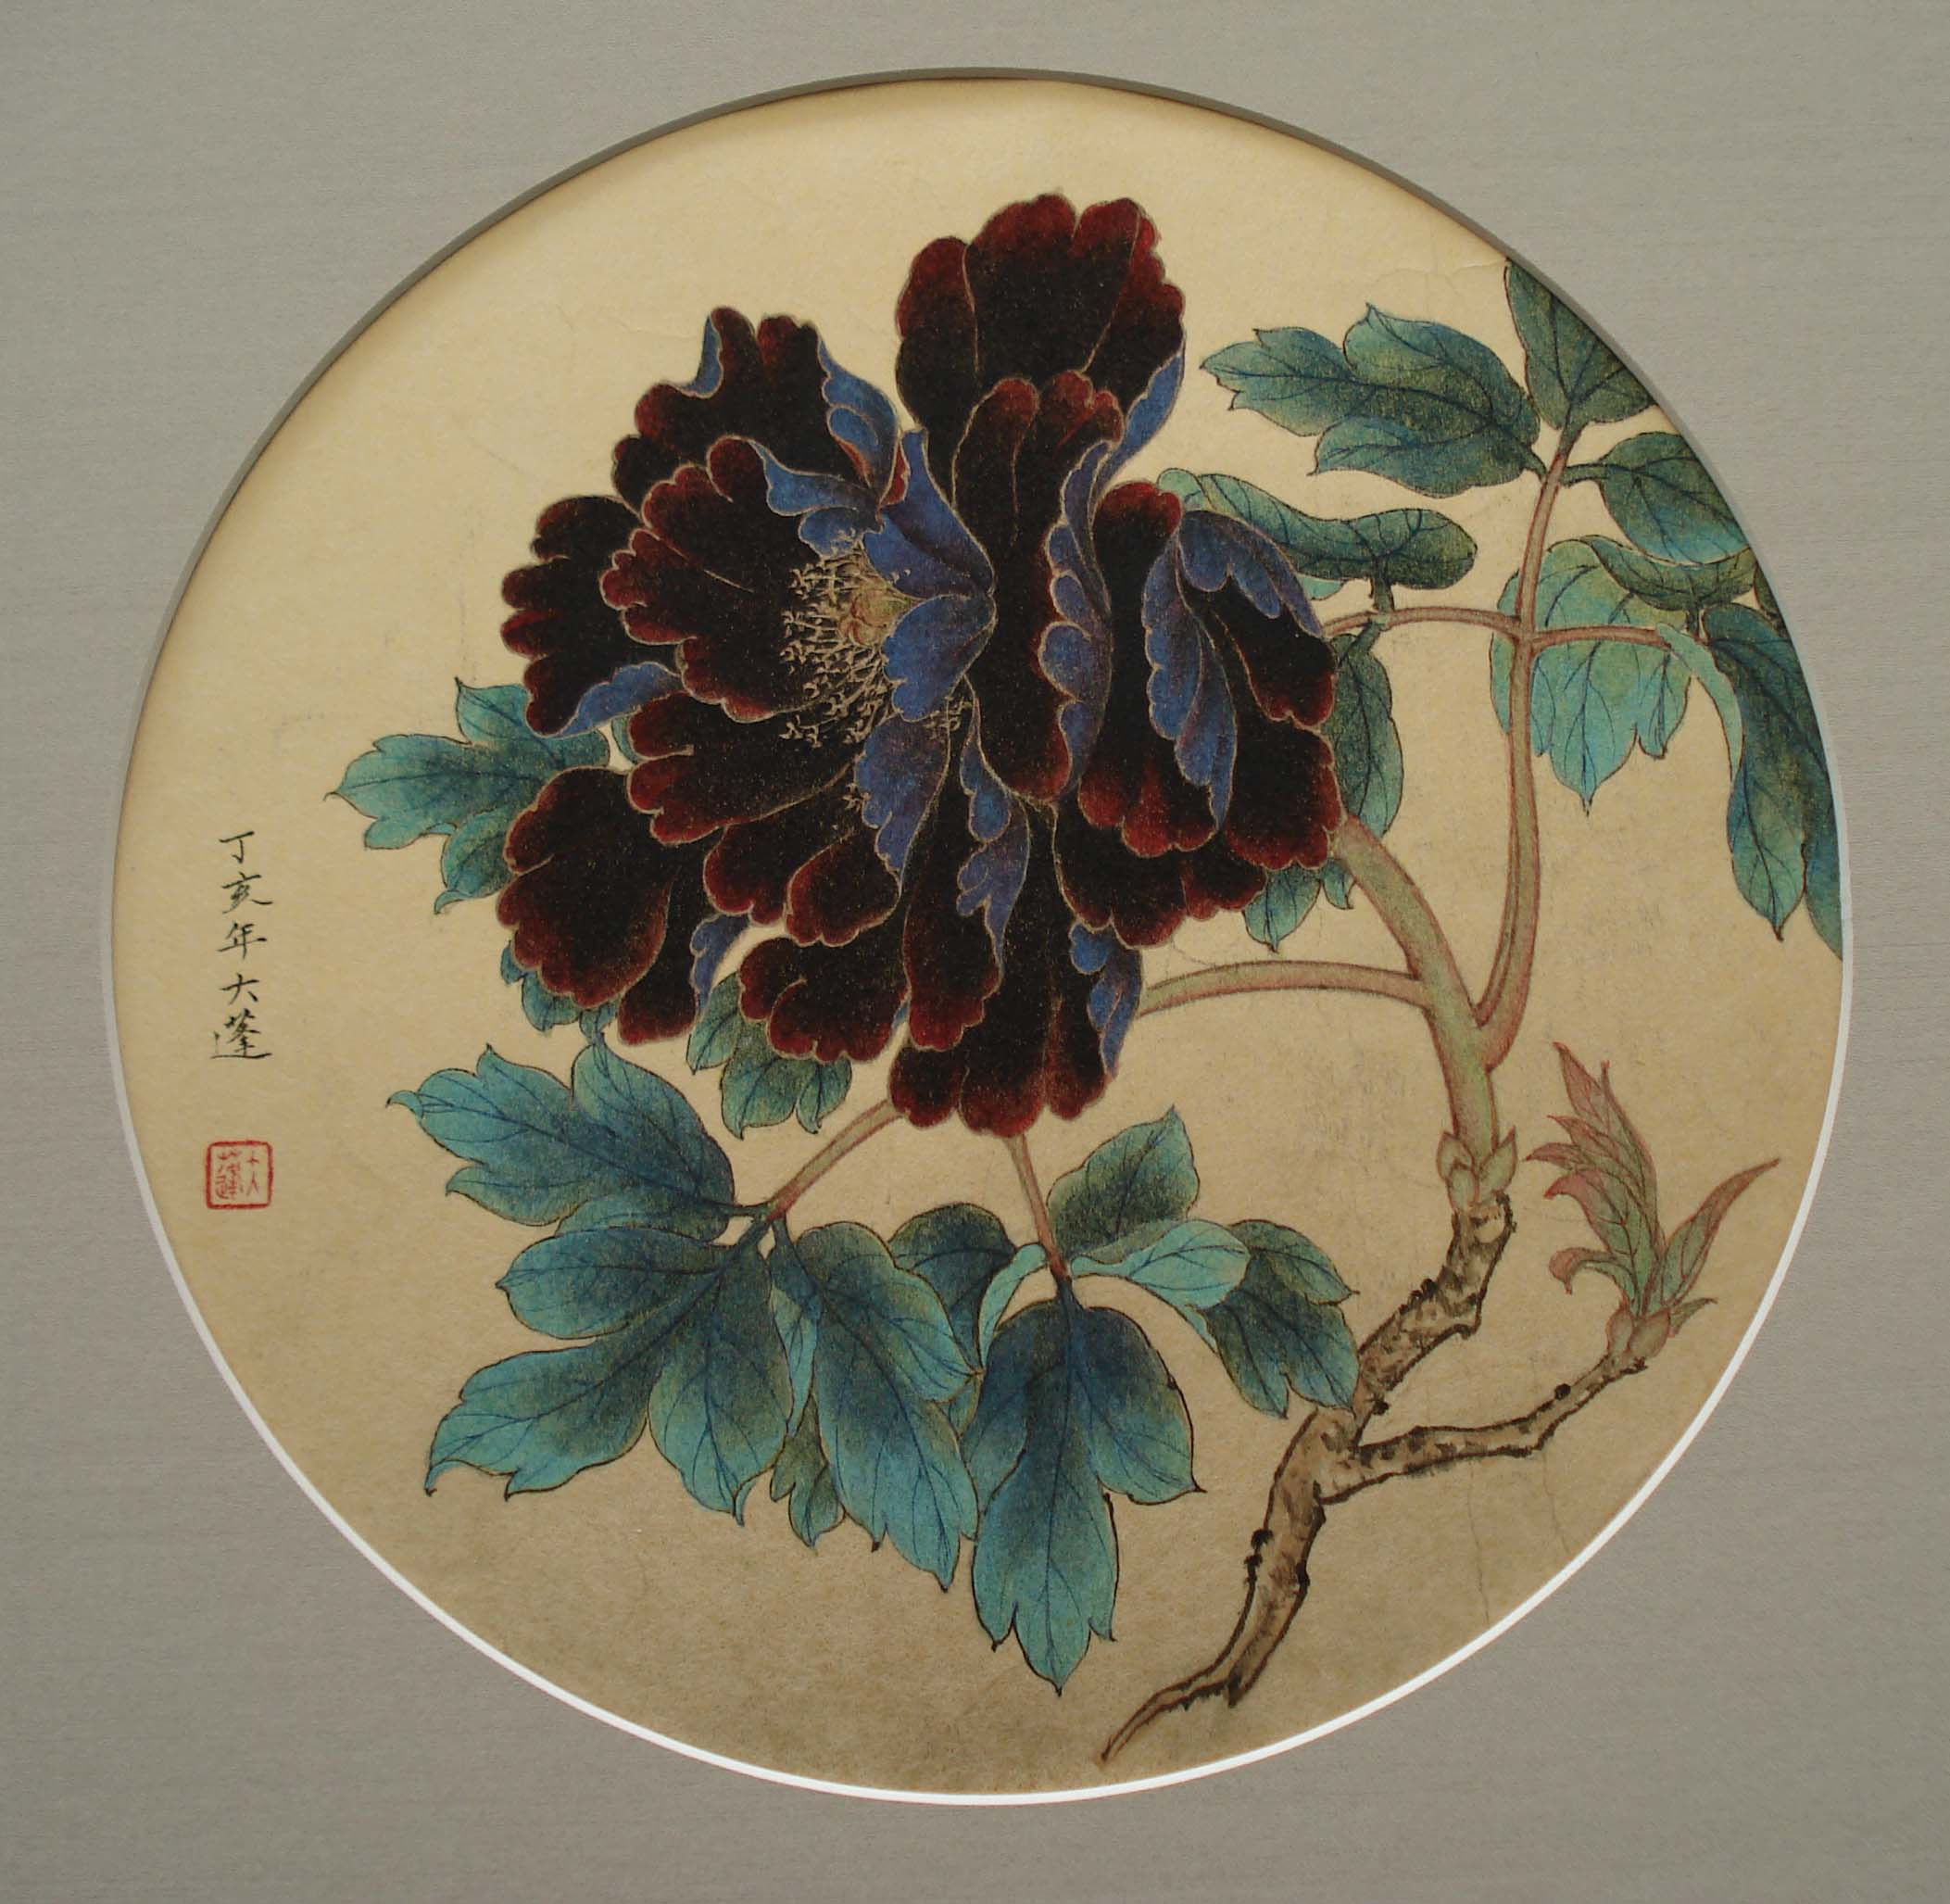 Crimson and Purple Peony flower painted in the Old Master style.